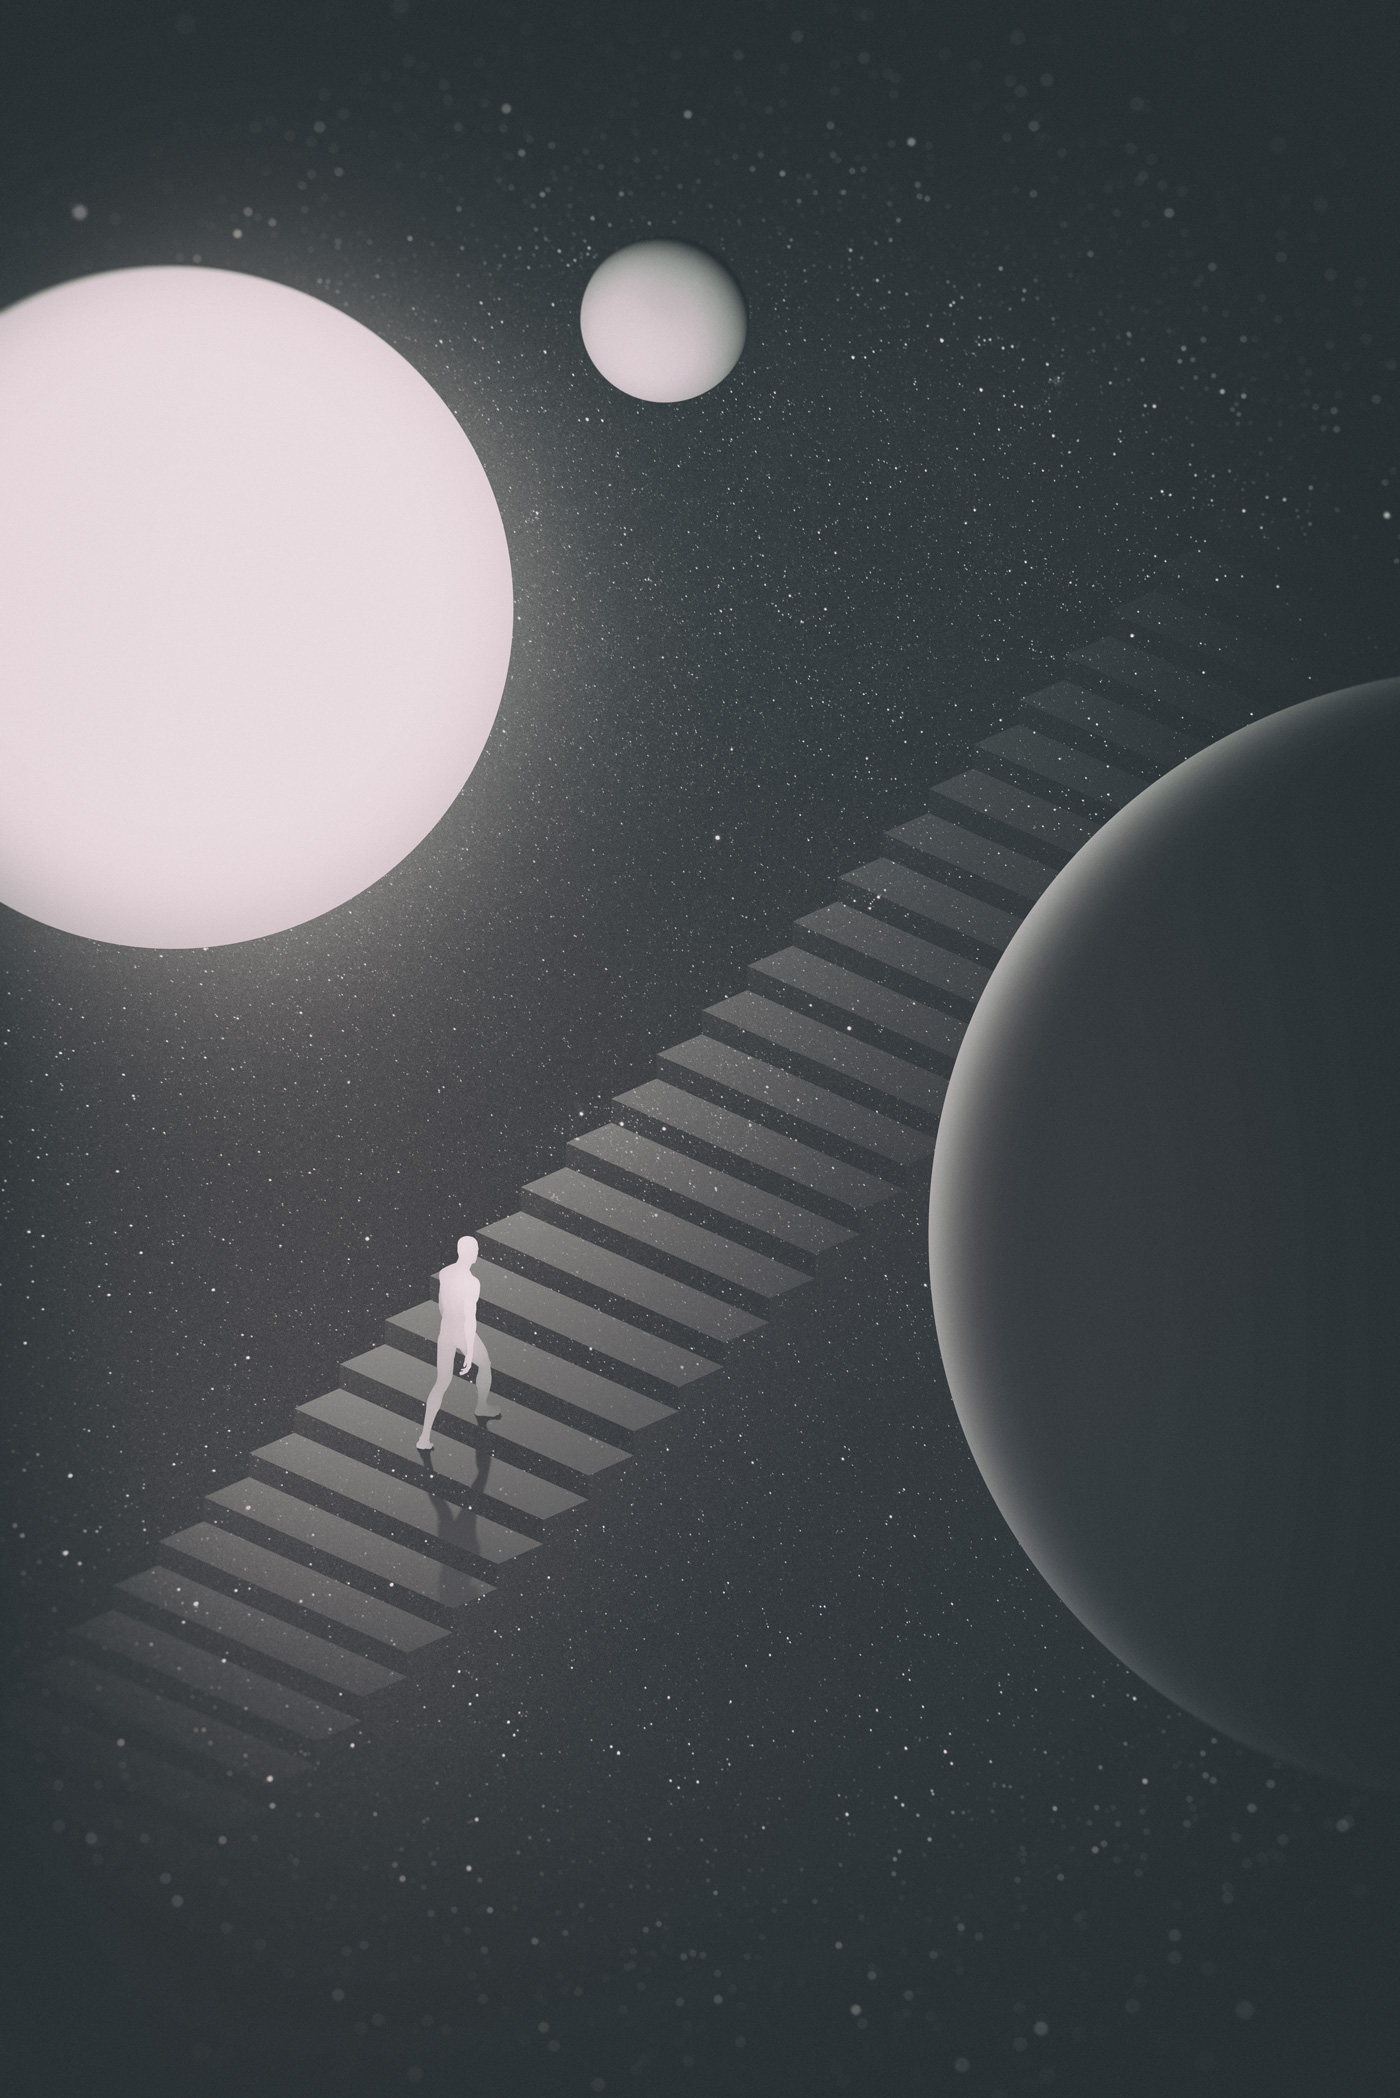 Surreal Illustration Style: The observatory